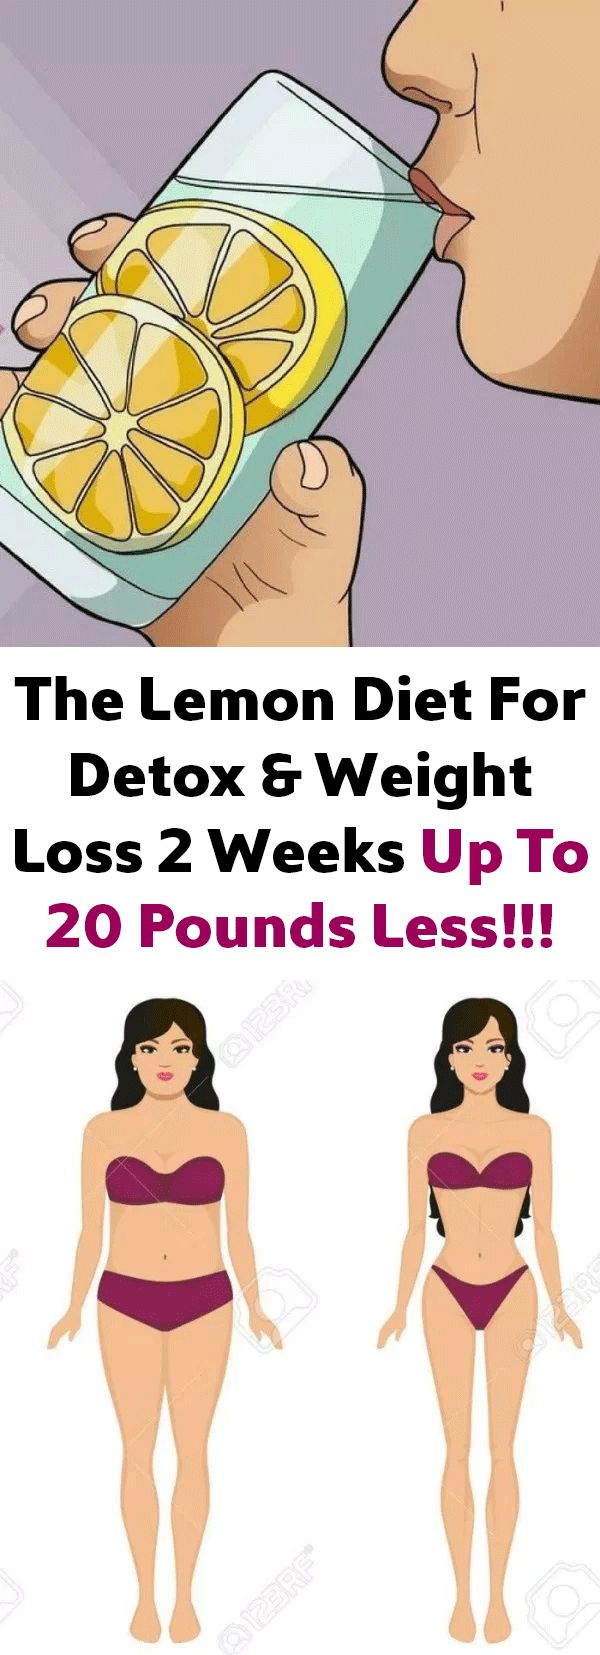 The Lemon Diet For Detox & Weight Loss 2 Weeks Up To 20 Pounds Less